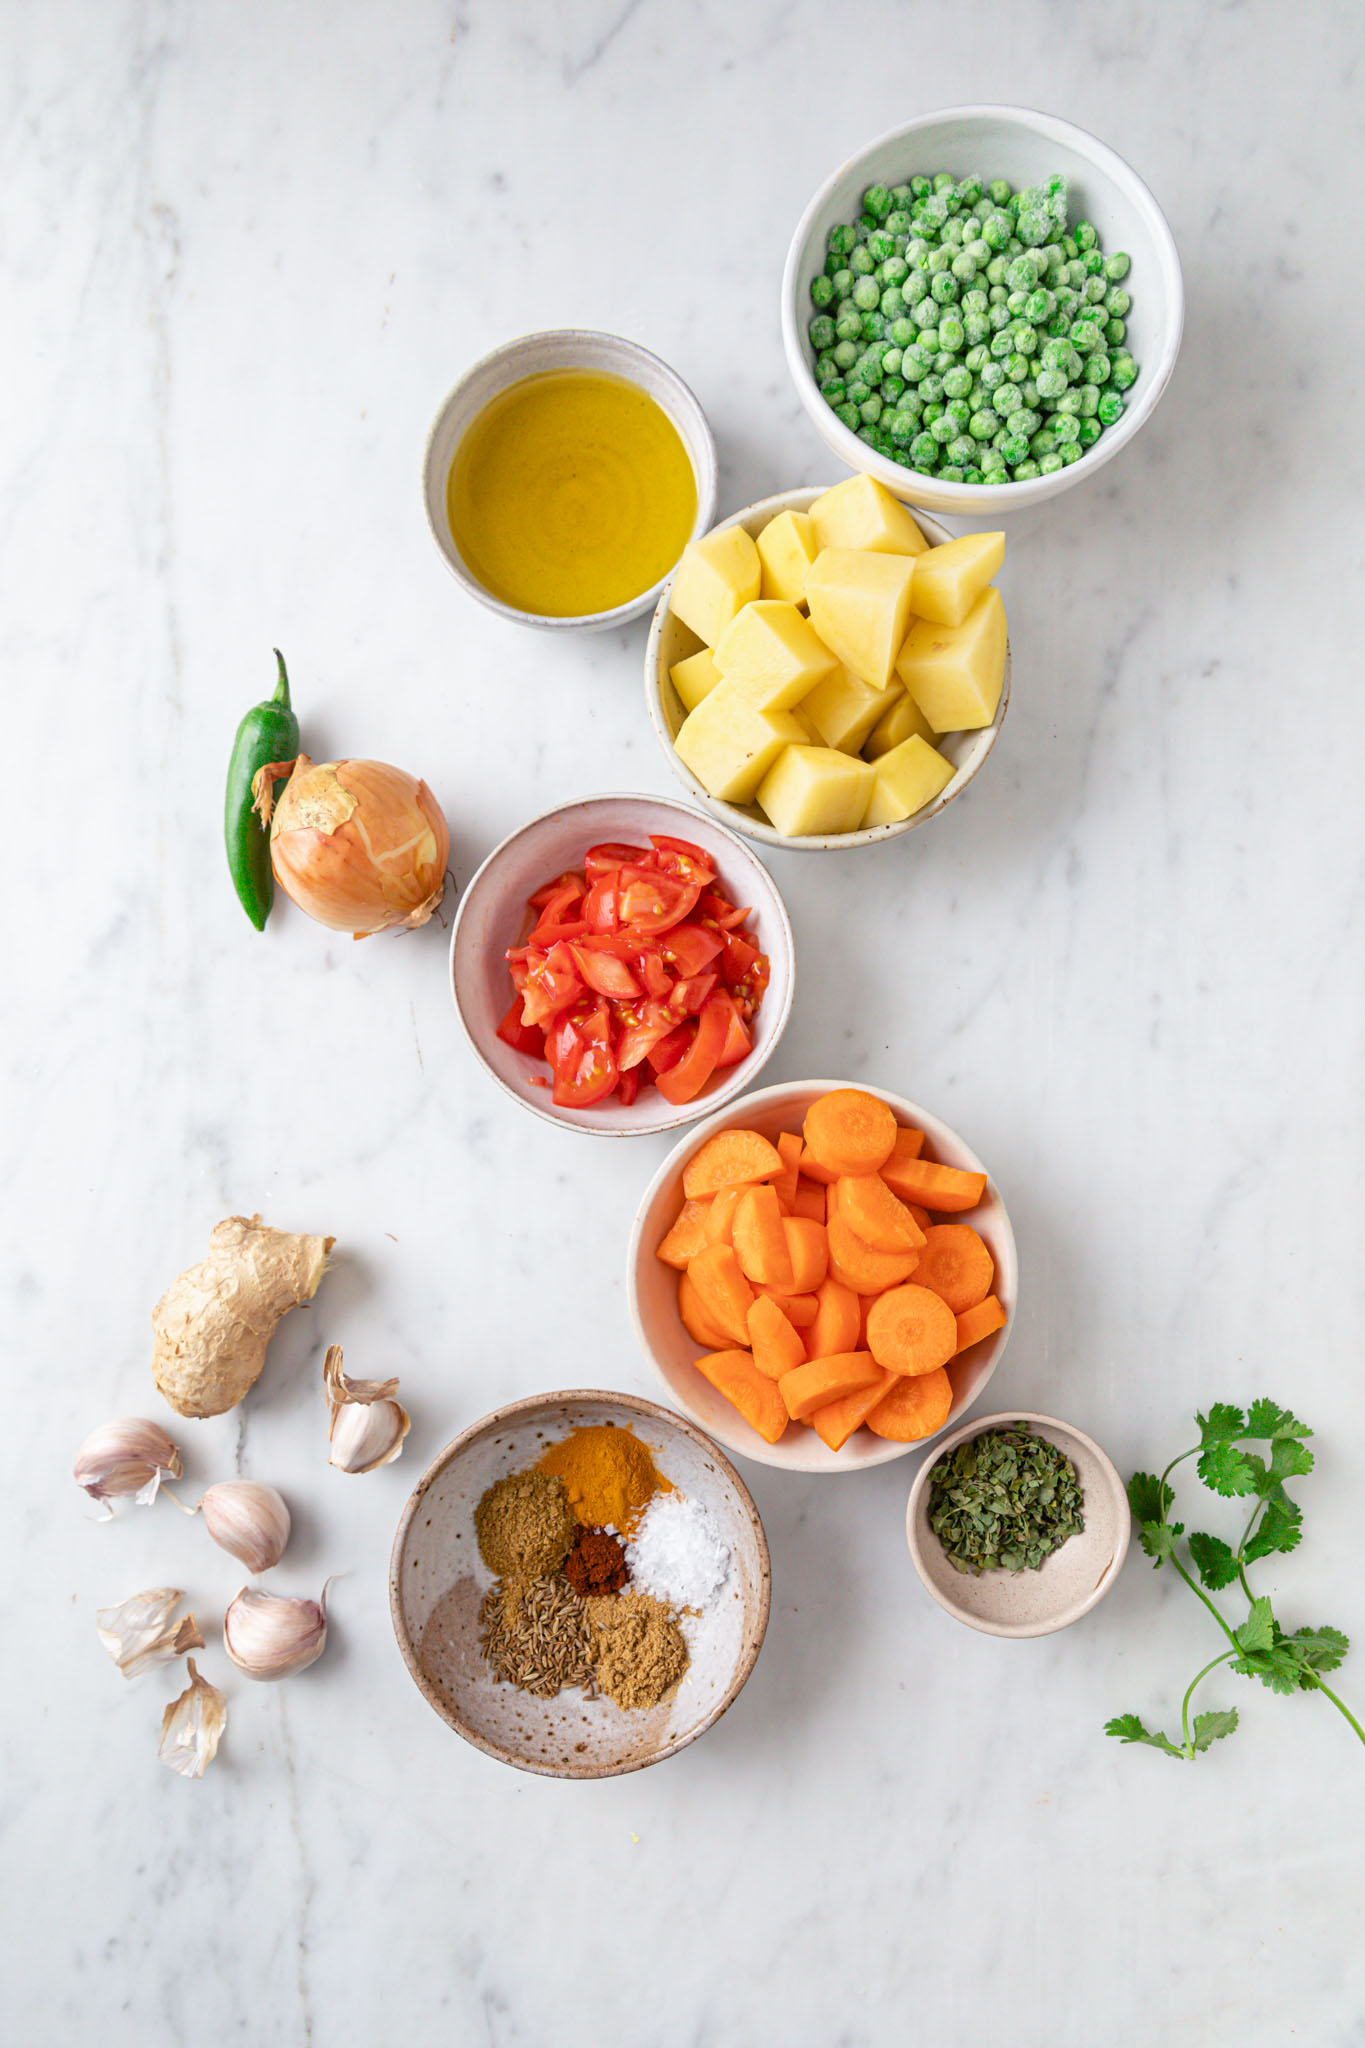 Ingredients for making Mixed Vegetable Curry on a marbled surface